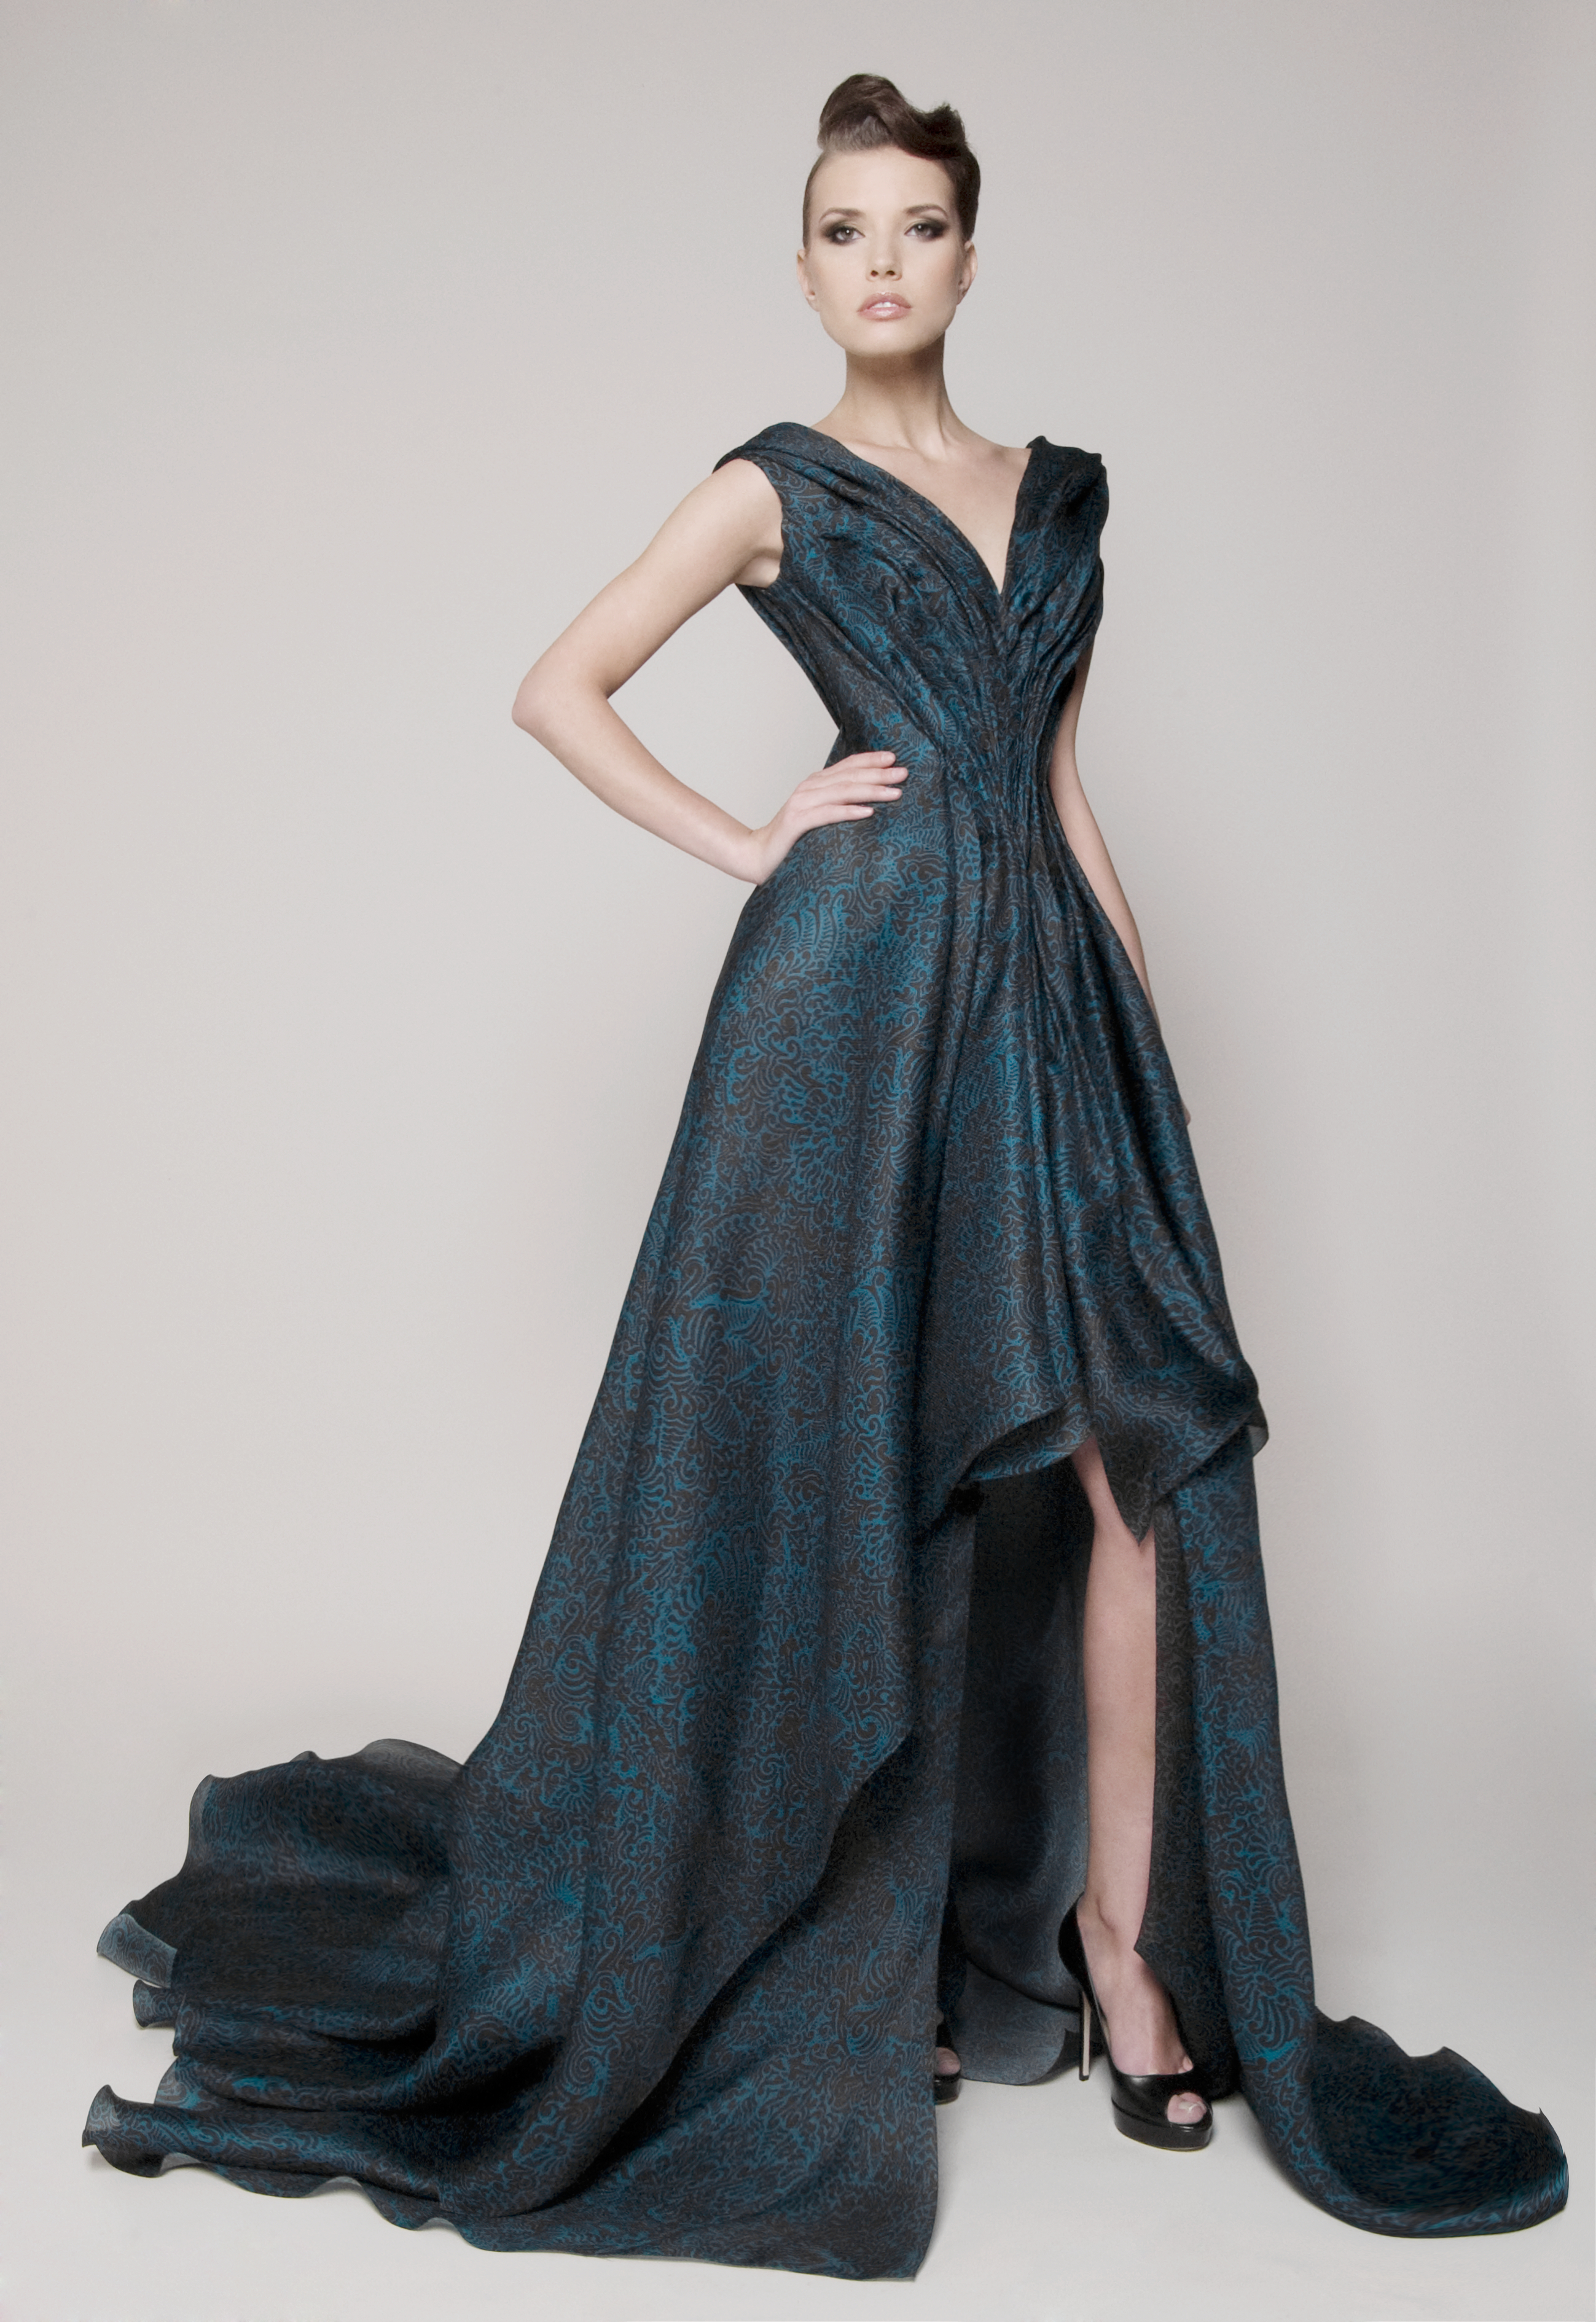 Fashion designer dina jsr 39 the architecture of clothing for California fashion designers directory